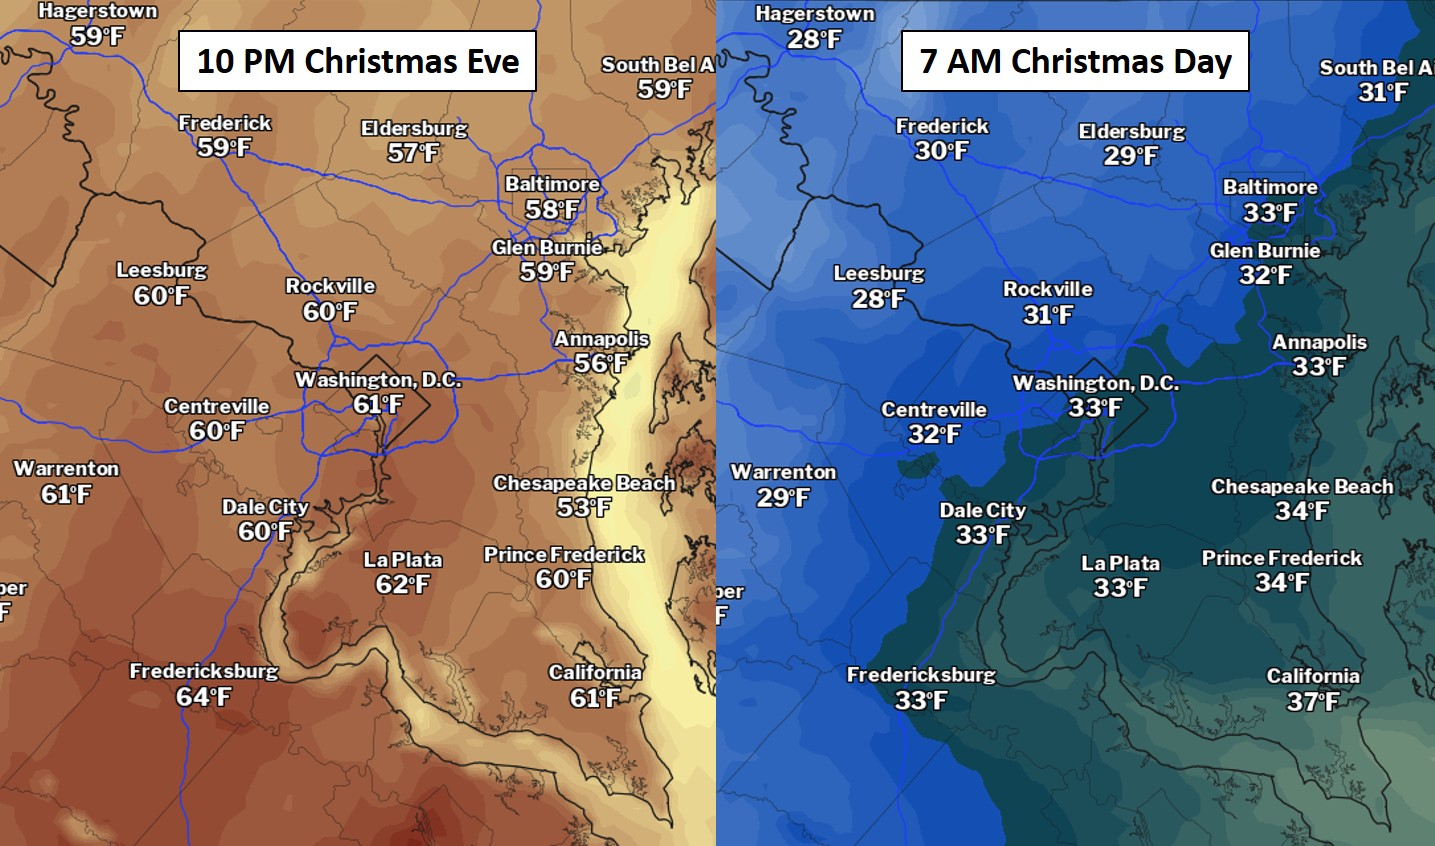 Weather Forecast For Christmas 2021 D C Area Forecast Calm Today Before A Wild Weather Ride Christmas Eve Into Christmas Day The Washington Post